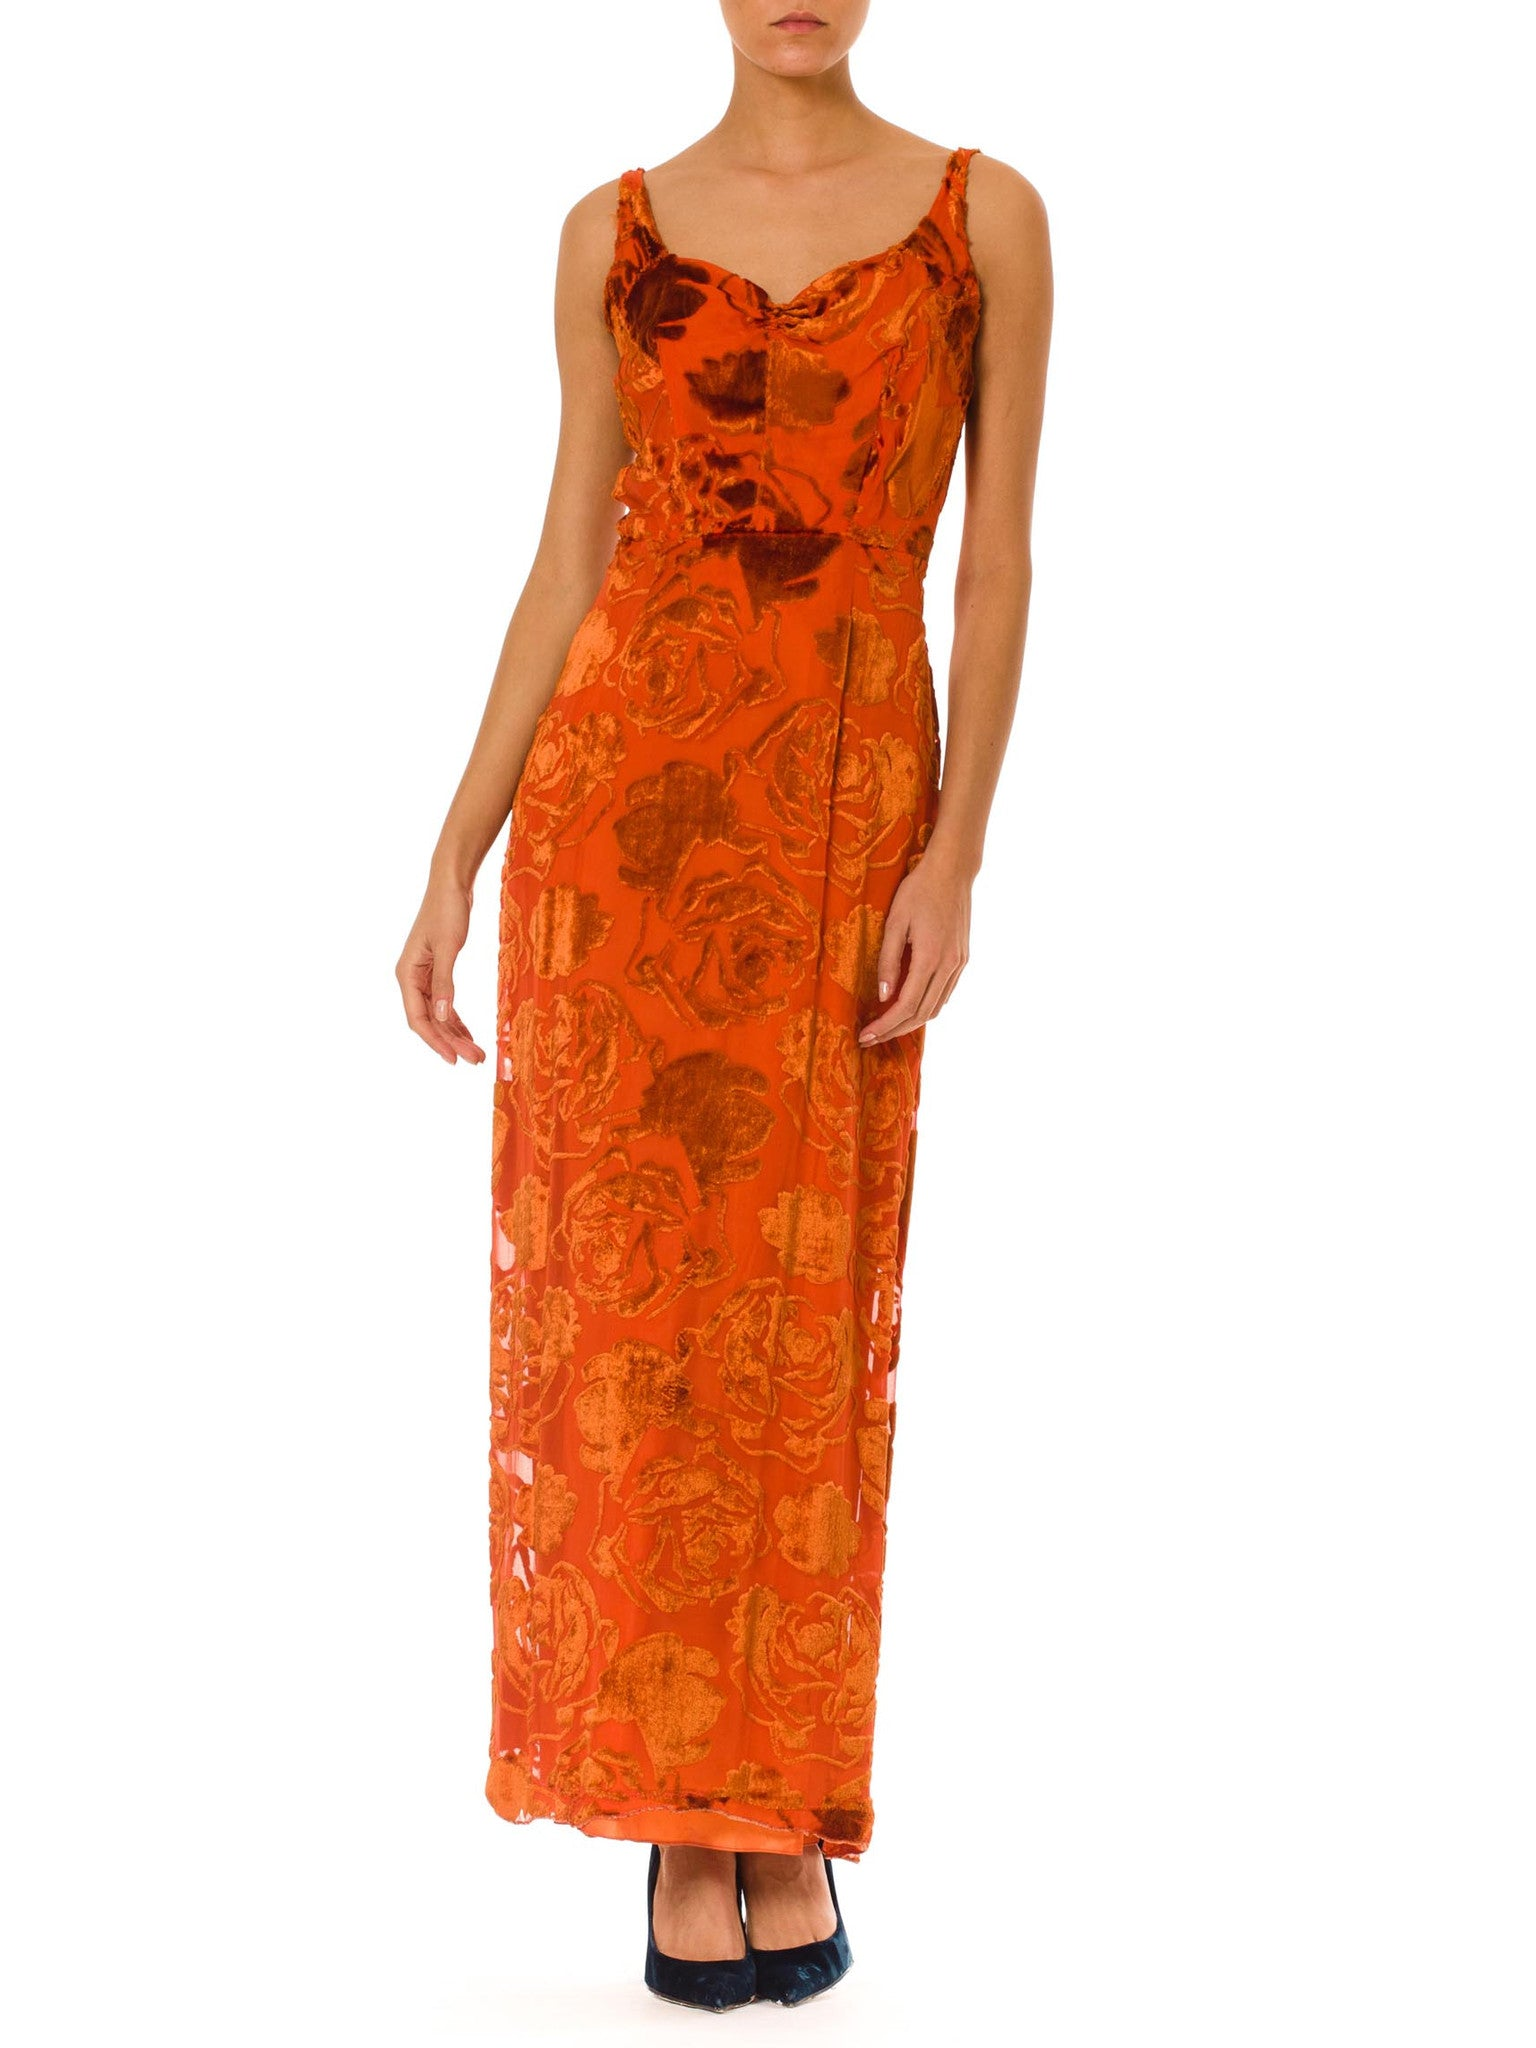 1930S Burnt Orange Floral Silk Burnout Velvet  Gown As-Is For Design Or Theatre